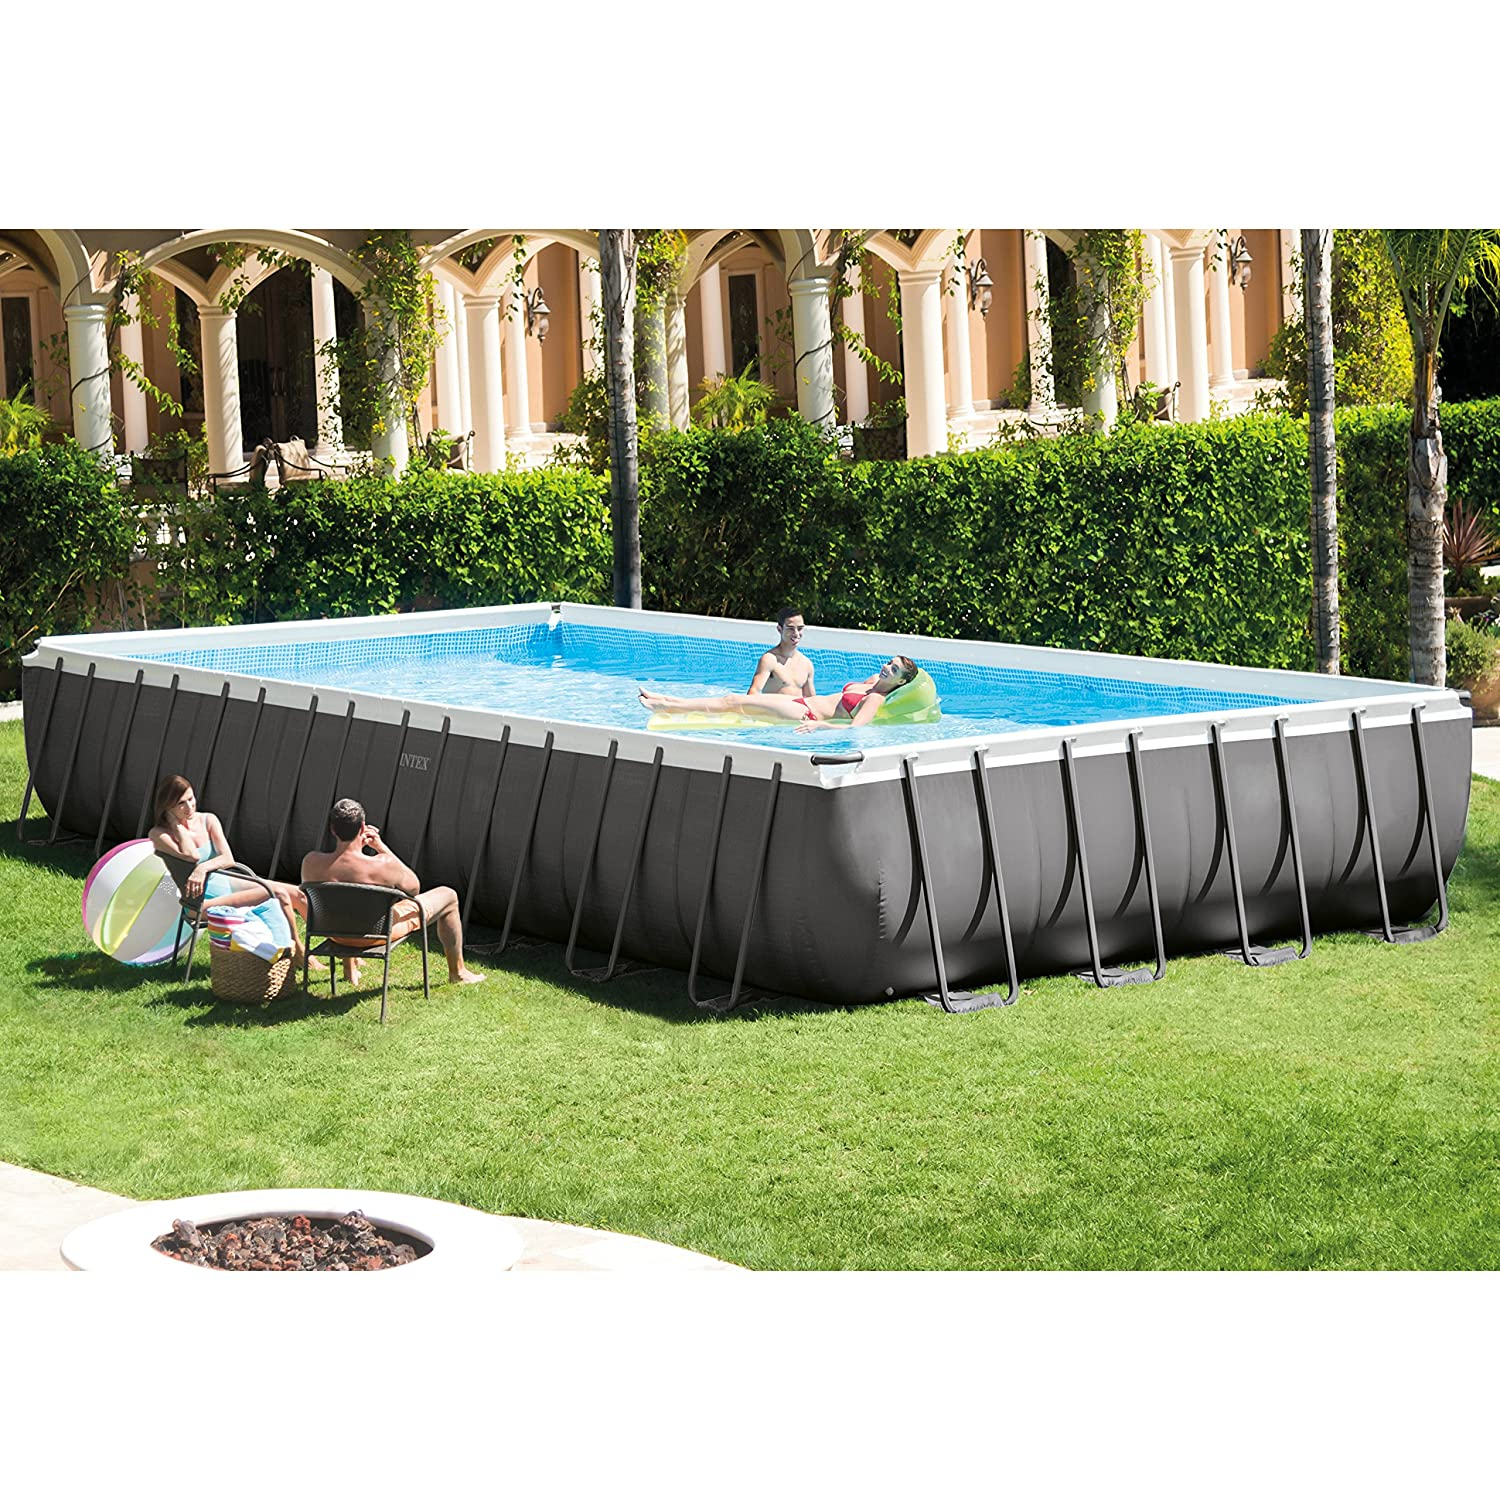 Intex 32ft X 16ft X 52in Above ground pool Black Friday Deal 2020